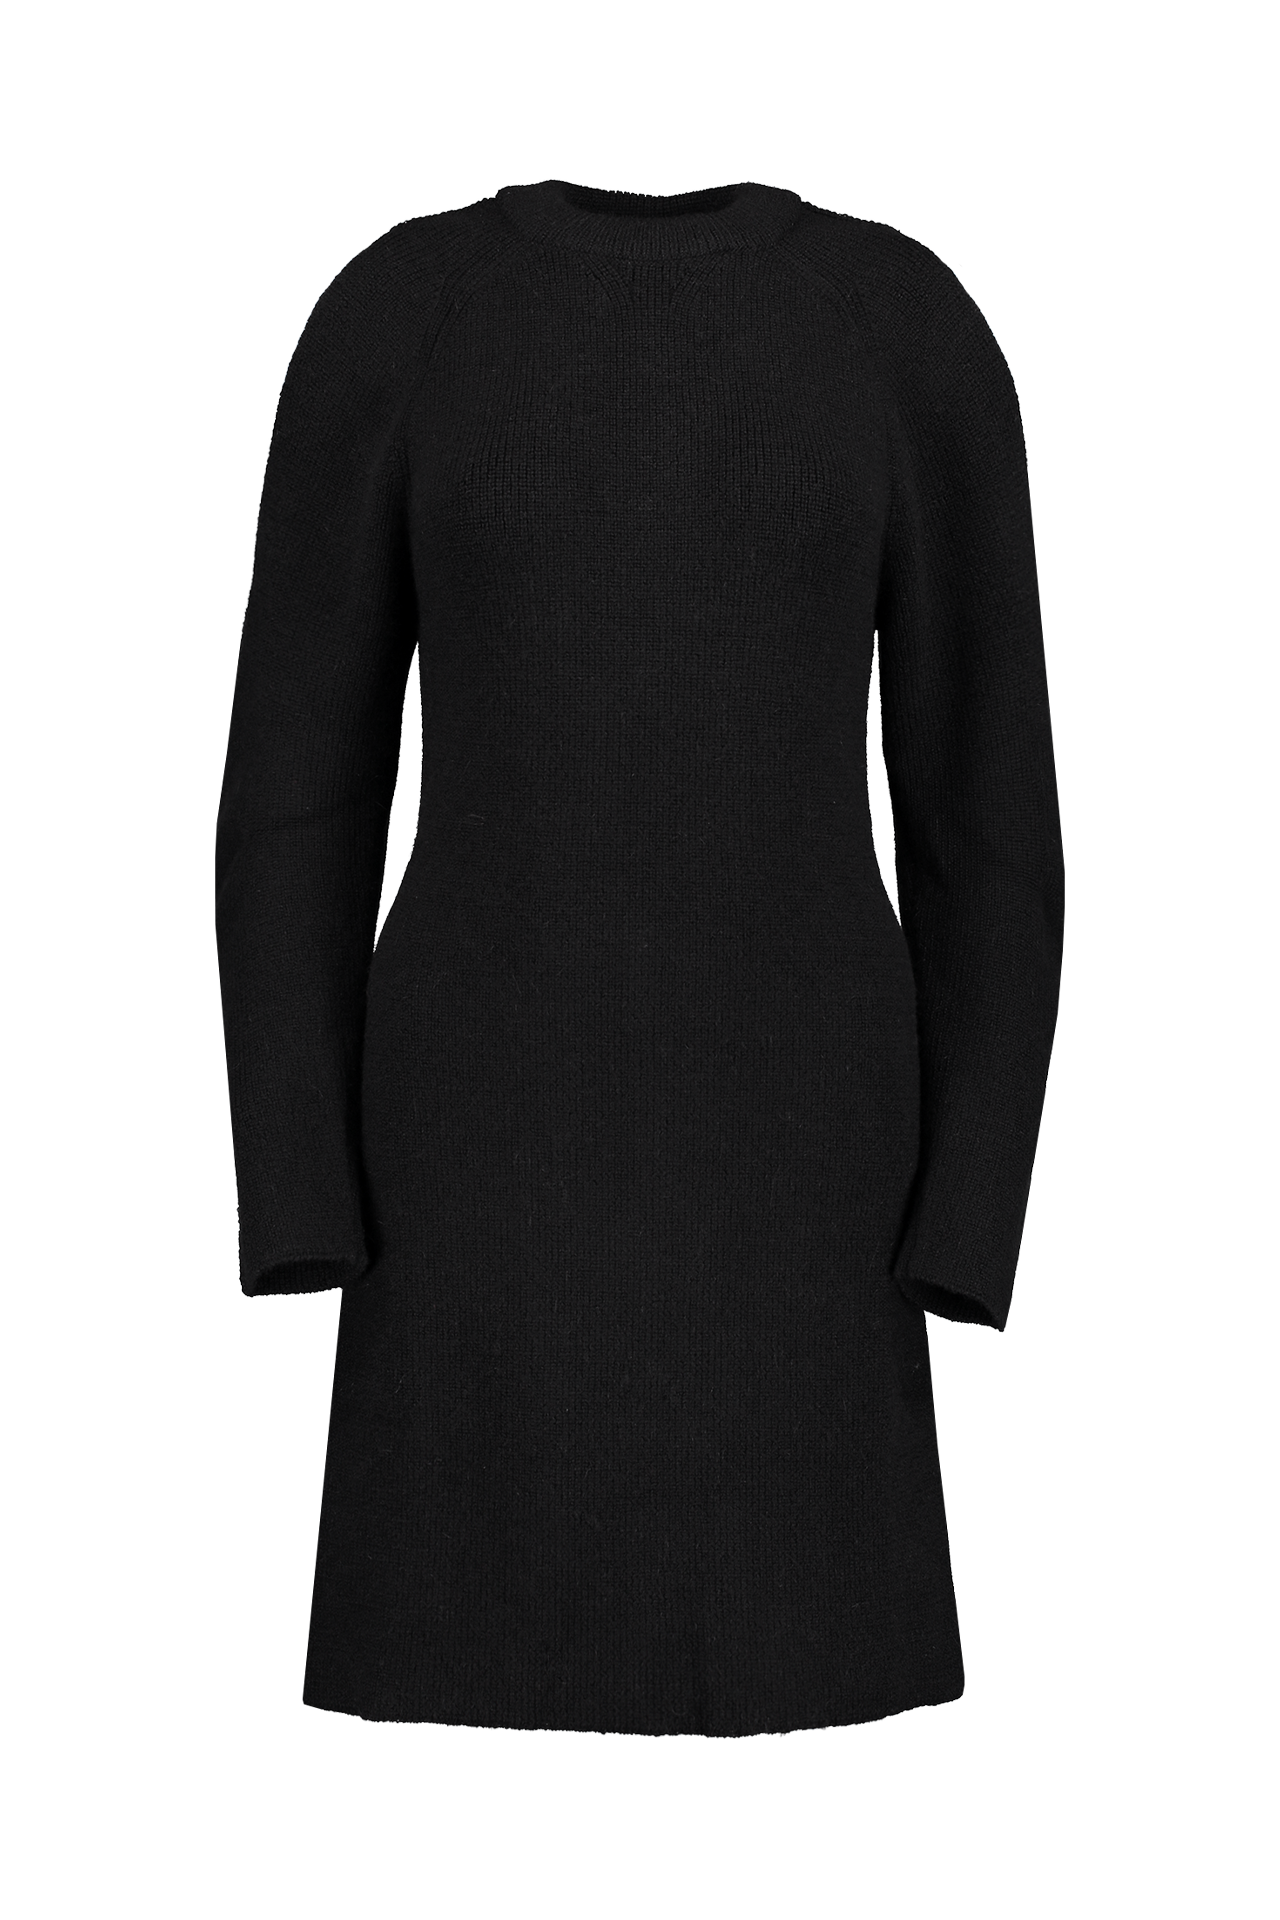 Long Sleeve Sweater Dress In Black